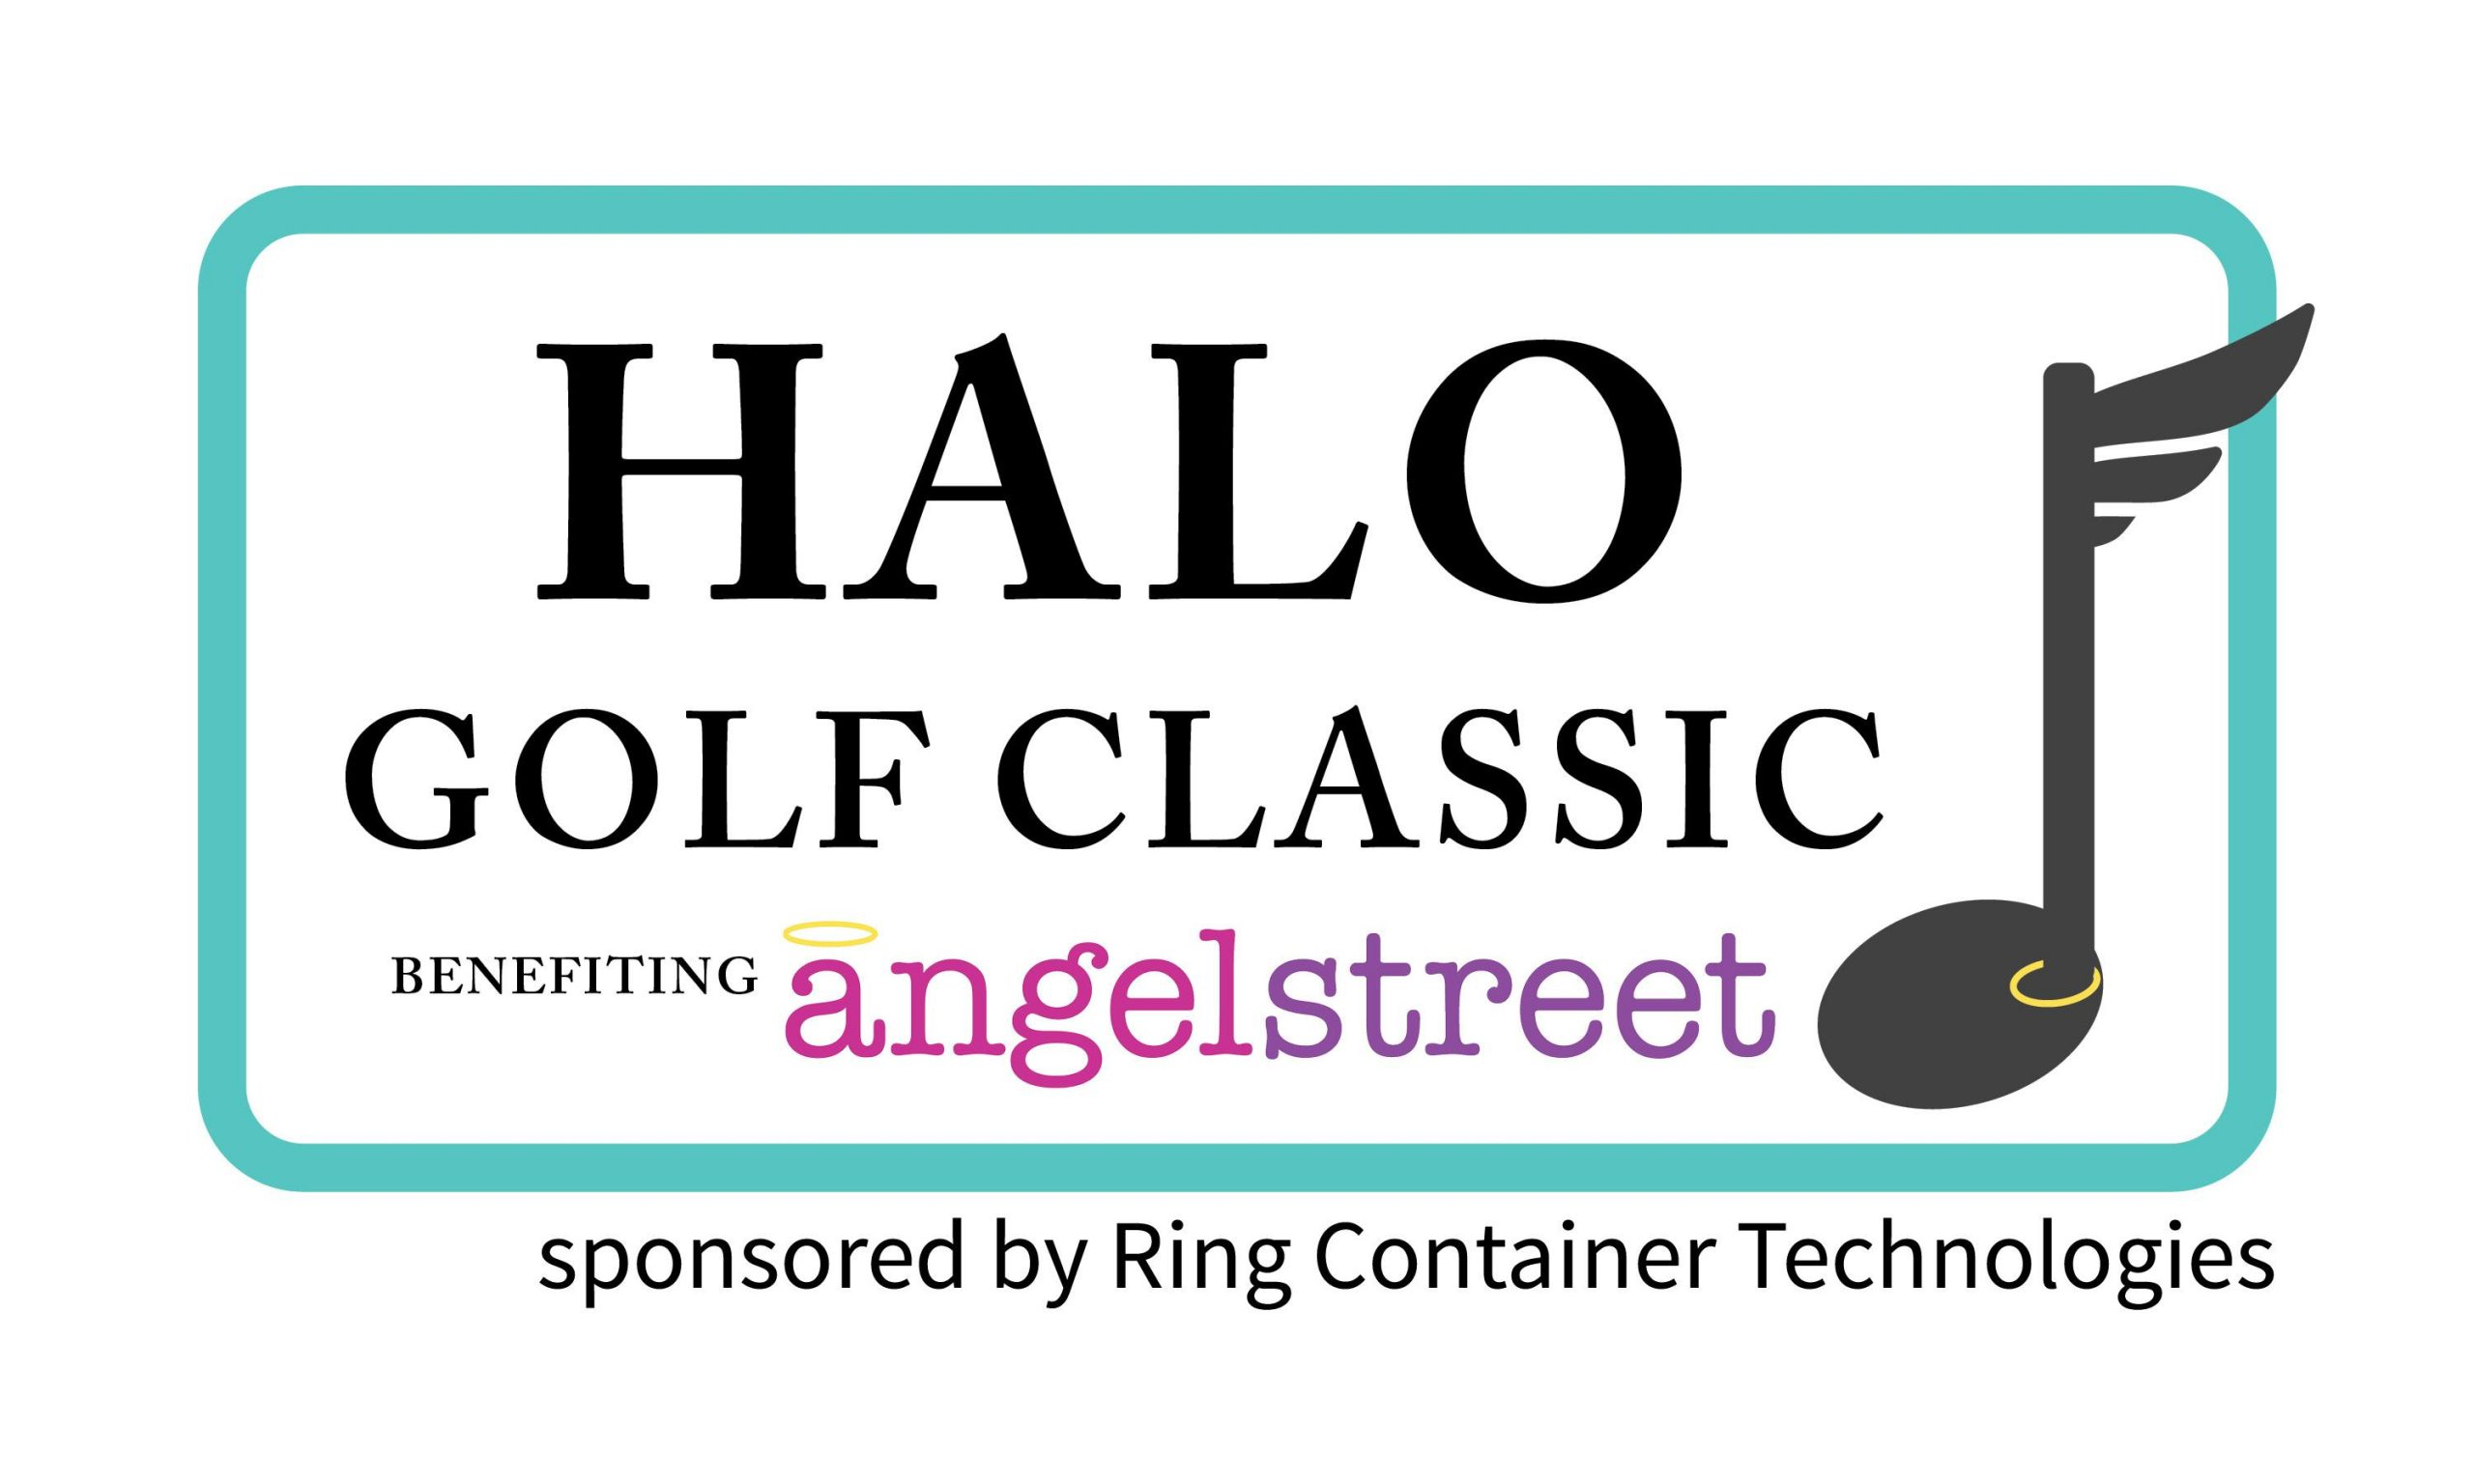 Halo Golf Classic, benefiting AngelStreet